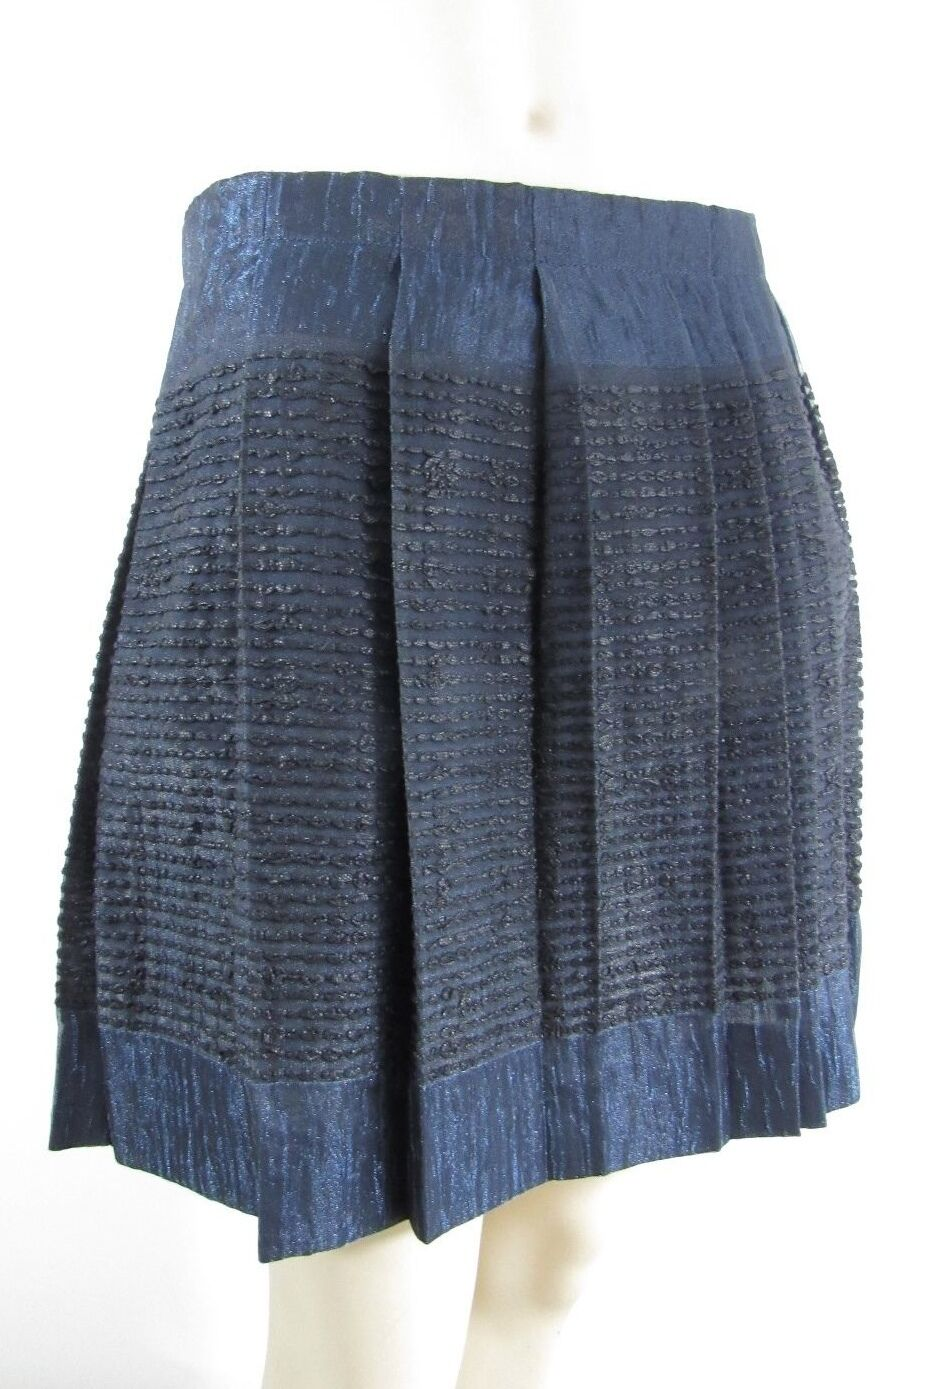 NWT J.CREW COLLECTION TEXTURED SHIMMERY PLEATED SKIRT SIZE 4